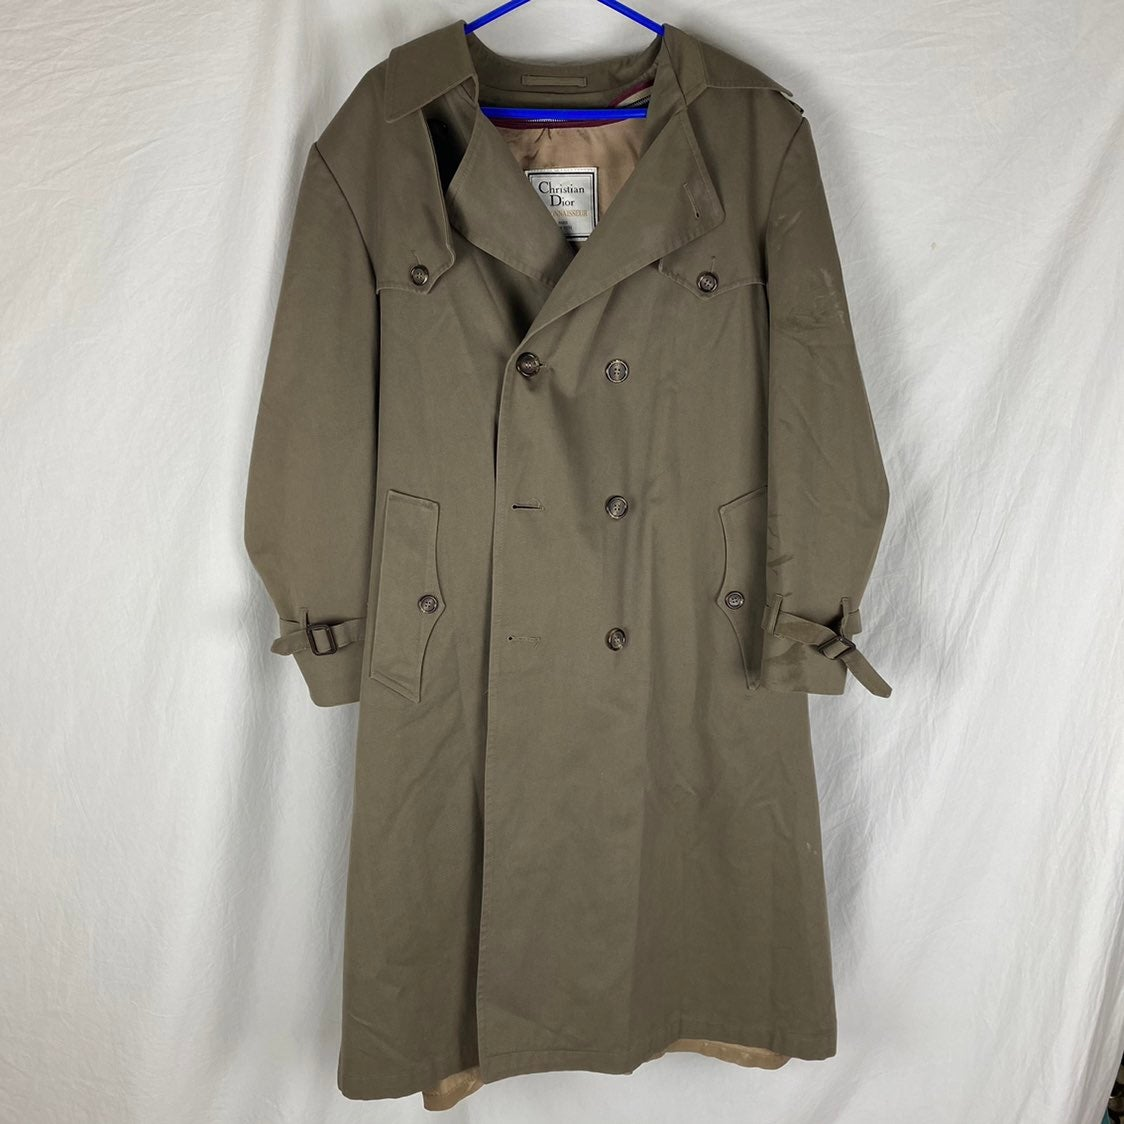 Christian Dior Tan Trench Coat